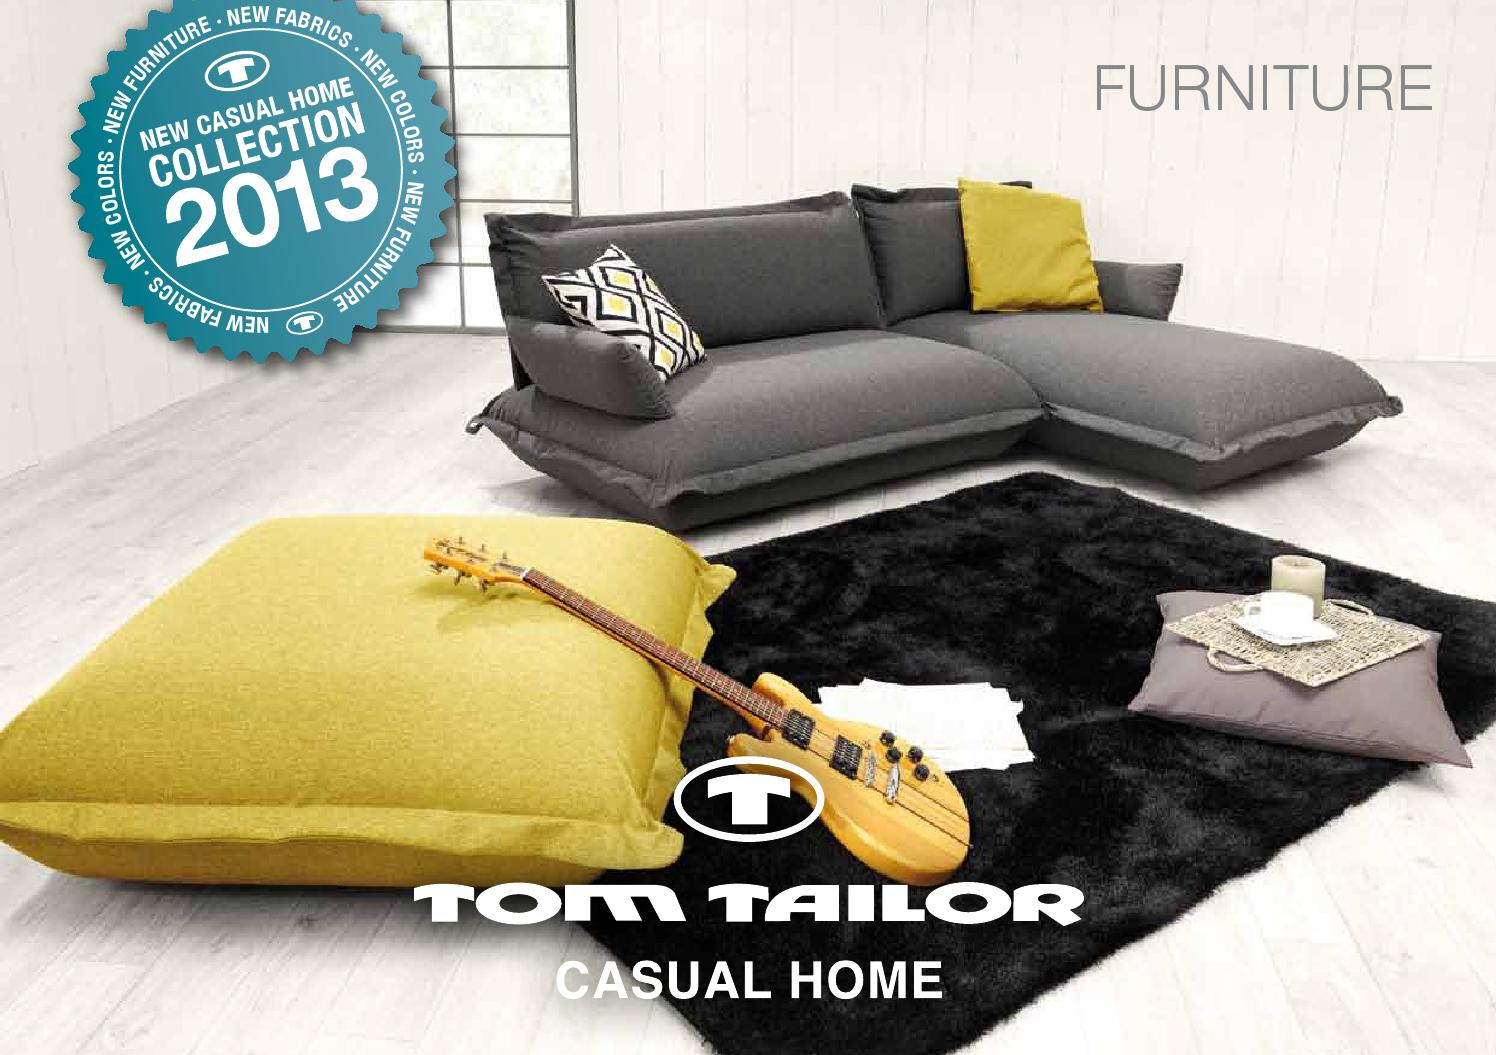 tom tailor casual home by issuu. Black Bedroom Furniture Sets. Home Design Ideas